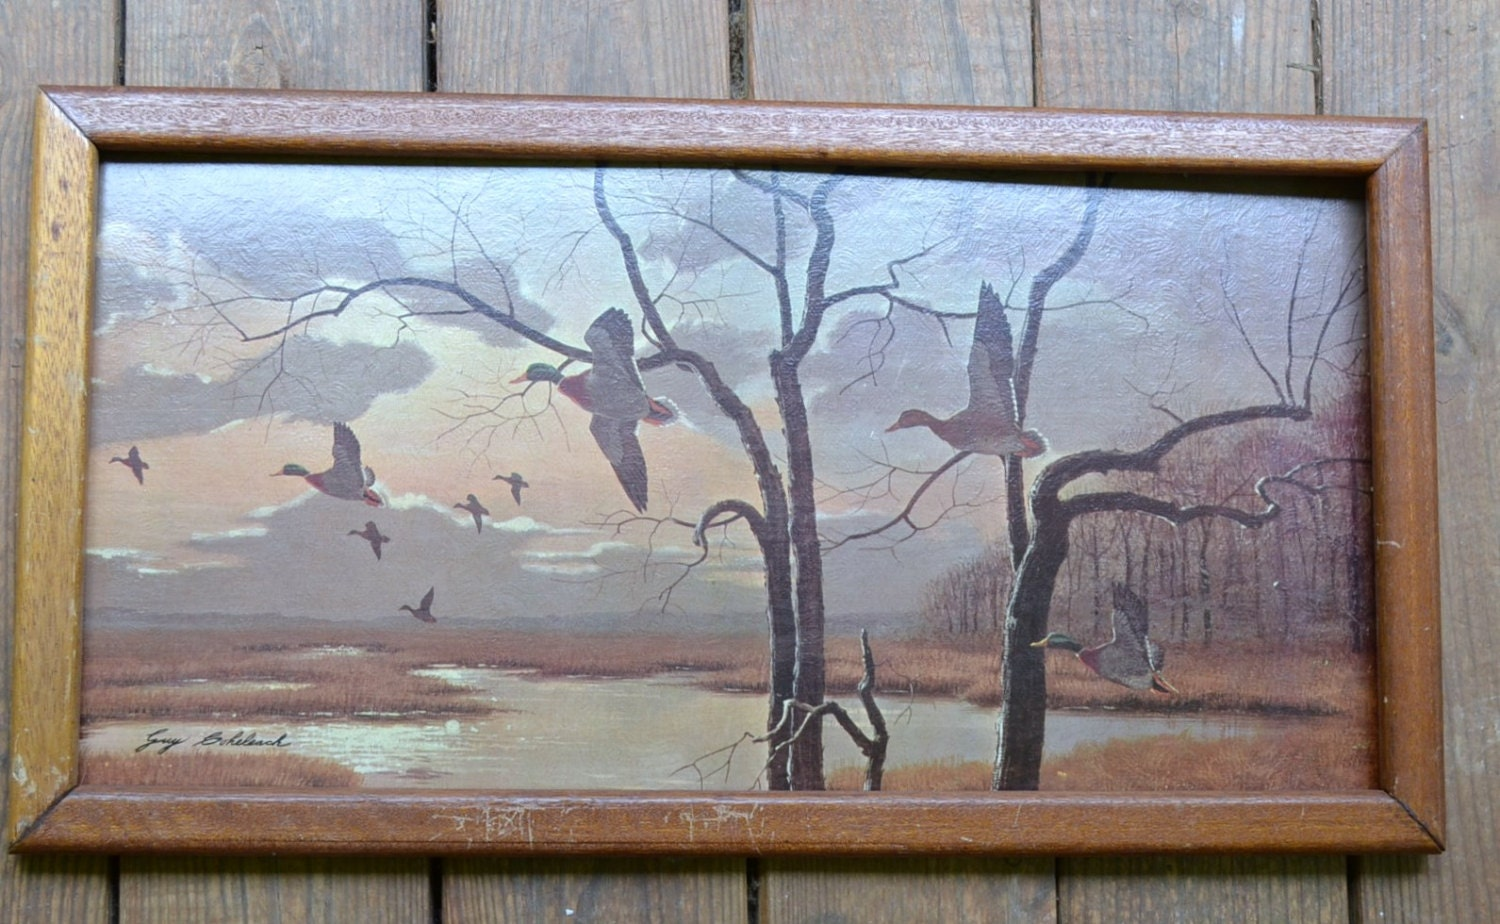 Vintage Framed Print by Guy Coheleach Heading South PanchosPorch - PanchosPorch